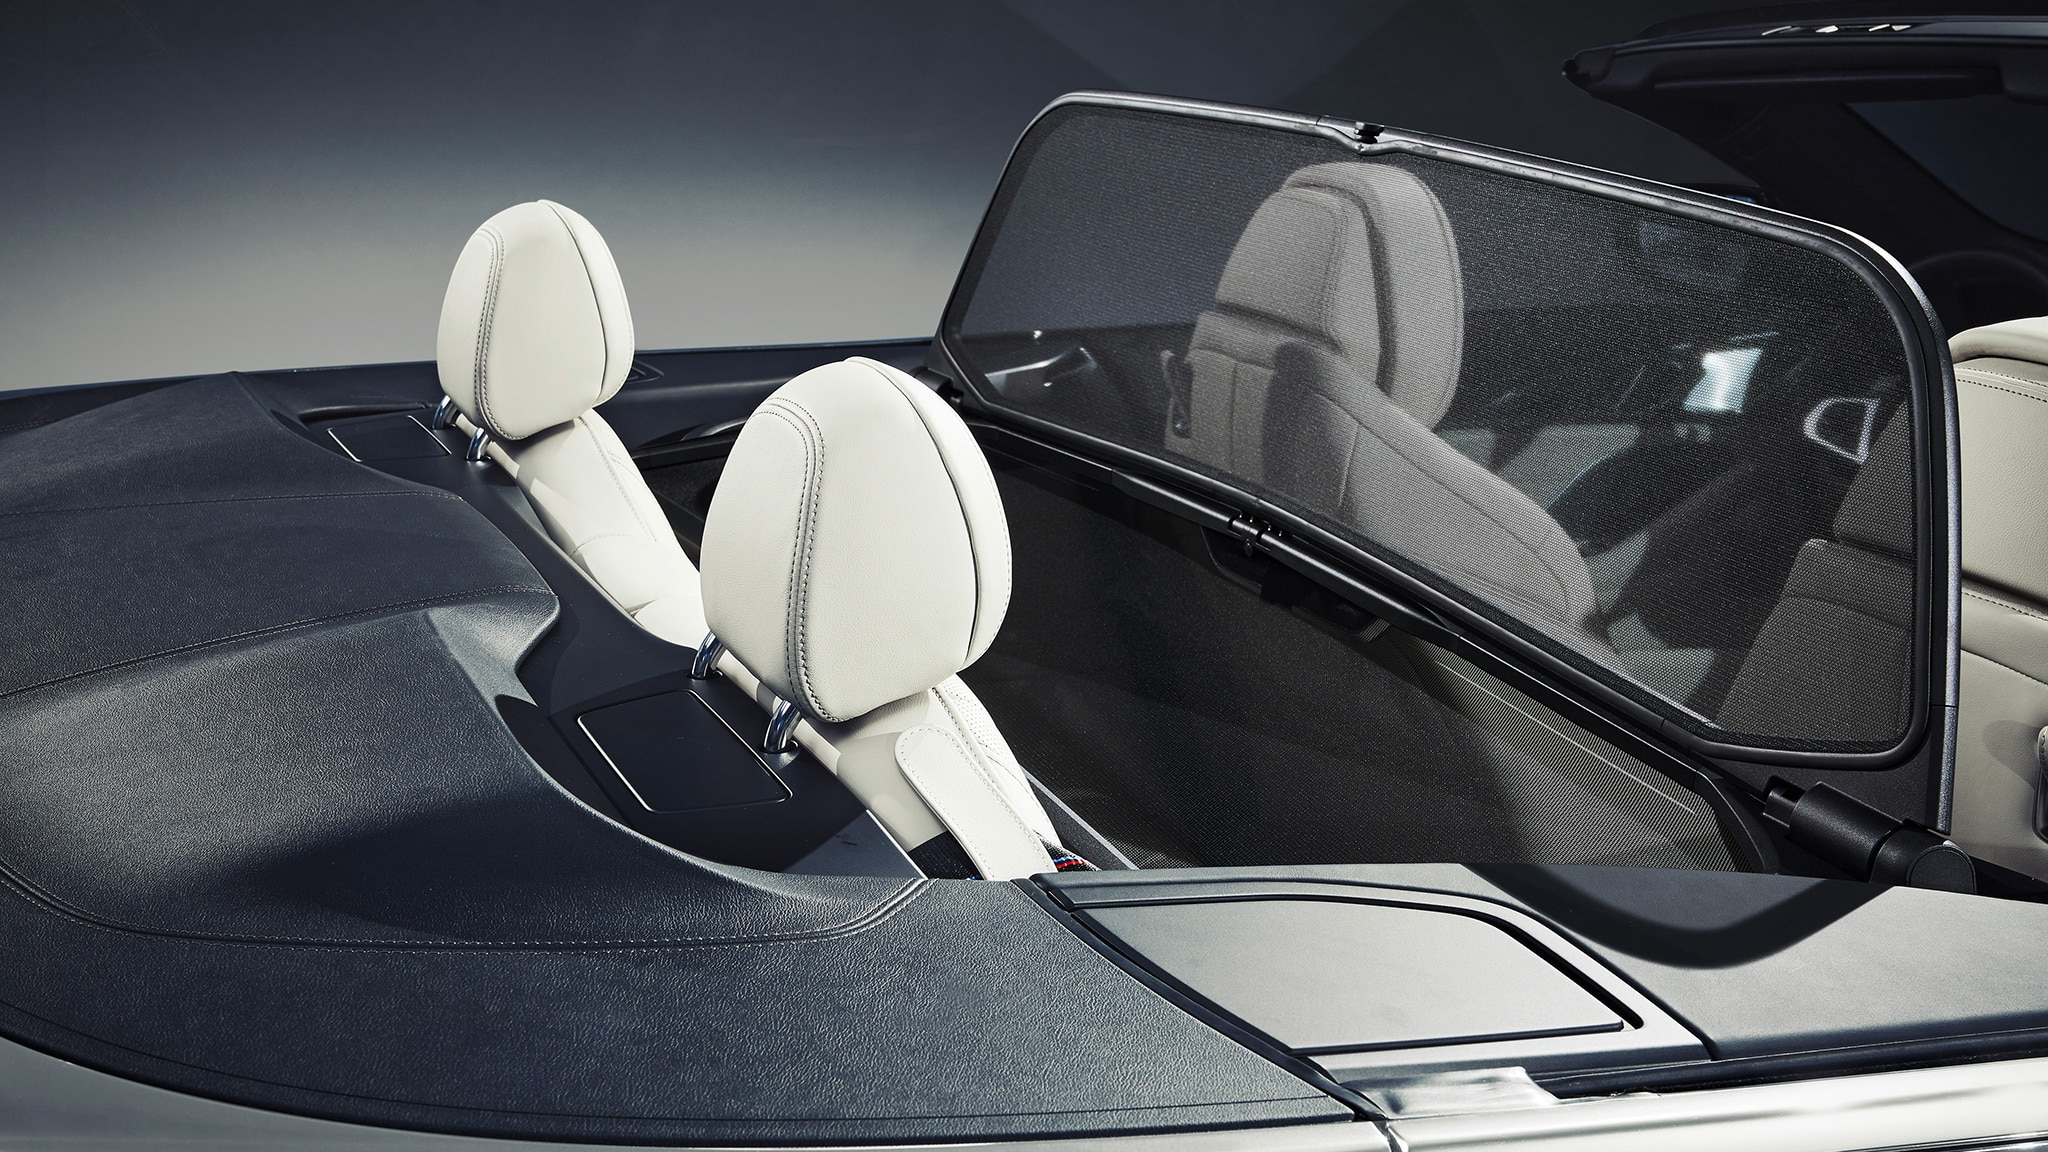 2019 BMW M850i Convertible Rear Seats With Wind Blocker Up